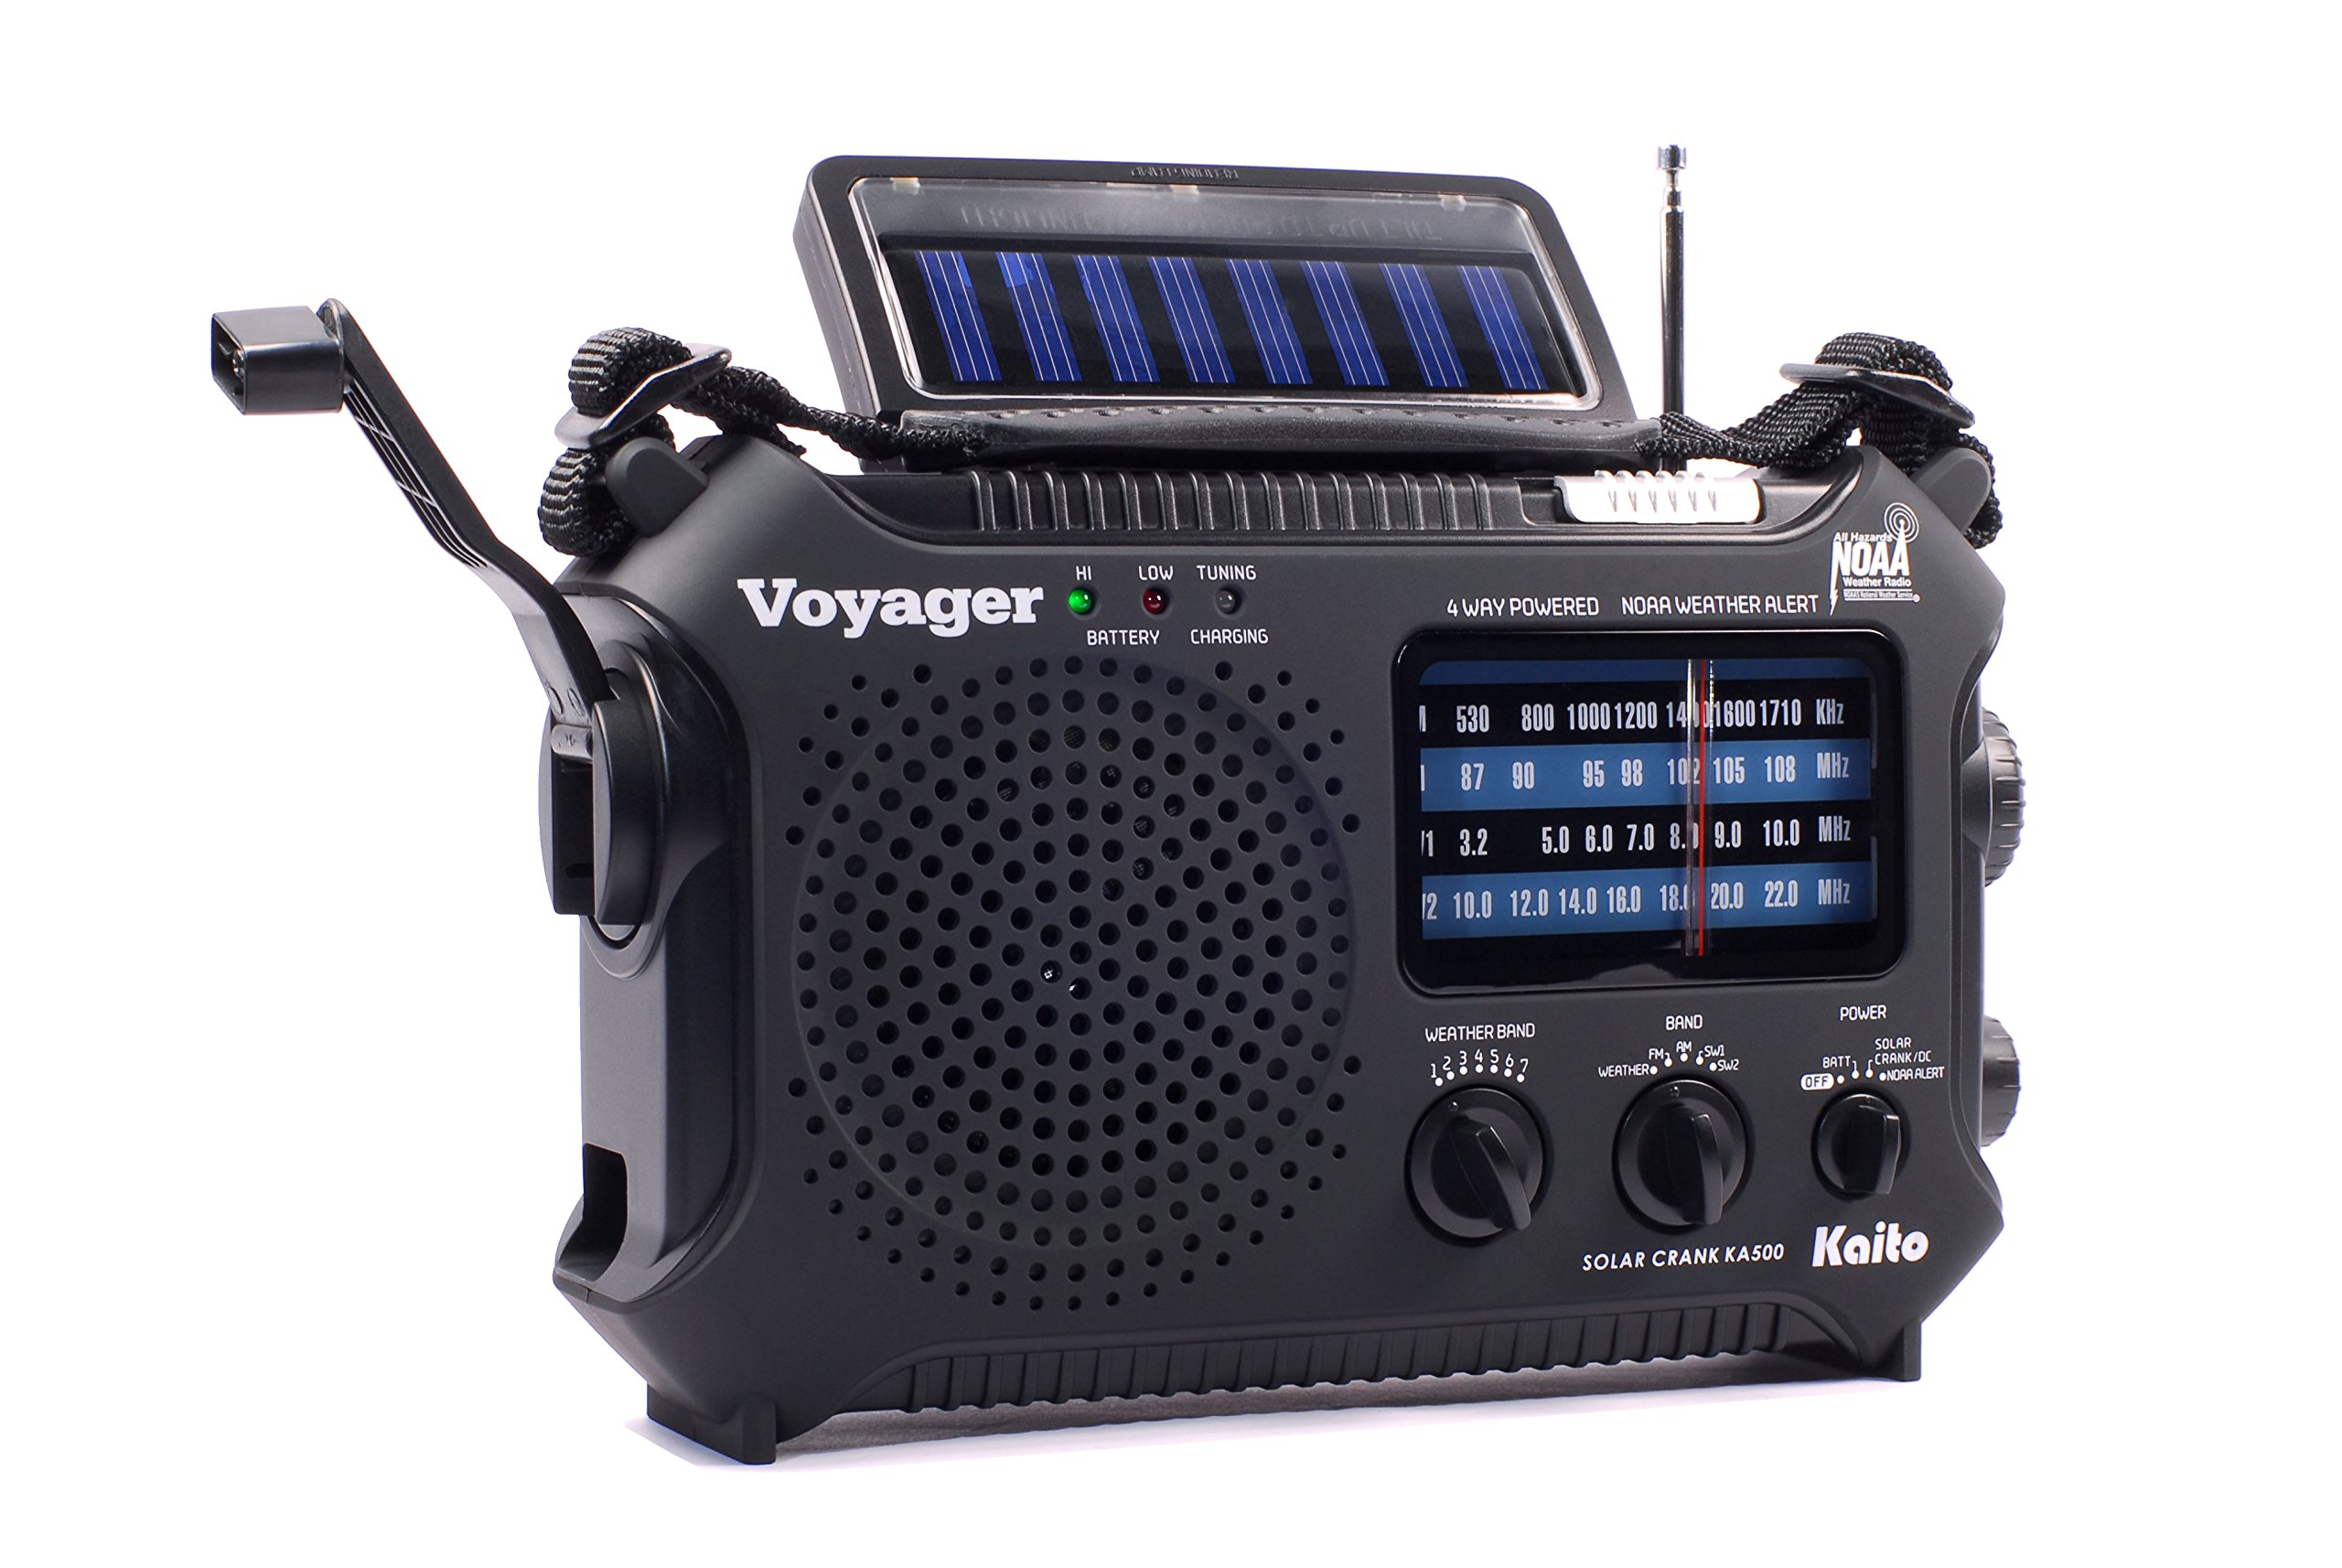 Kaito KA500 5-way Powered Emergency AM/FM/SW NOAA Weather Alert Radio with Solar,Wind Up,Dynamo Crank,Flashlight and Reading Lamp, Cellphone Charger,Color Black by Kaito